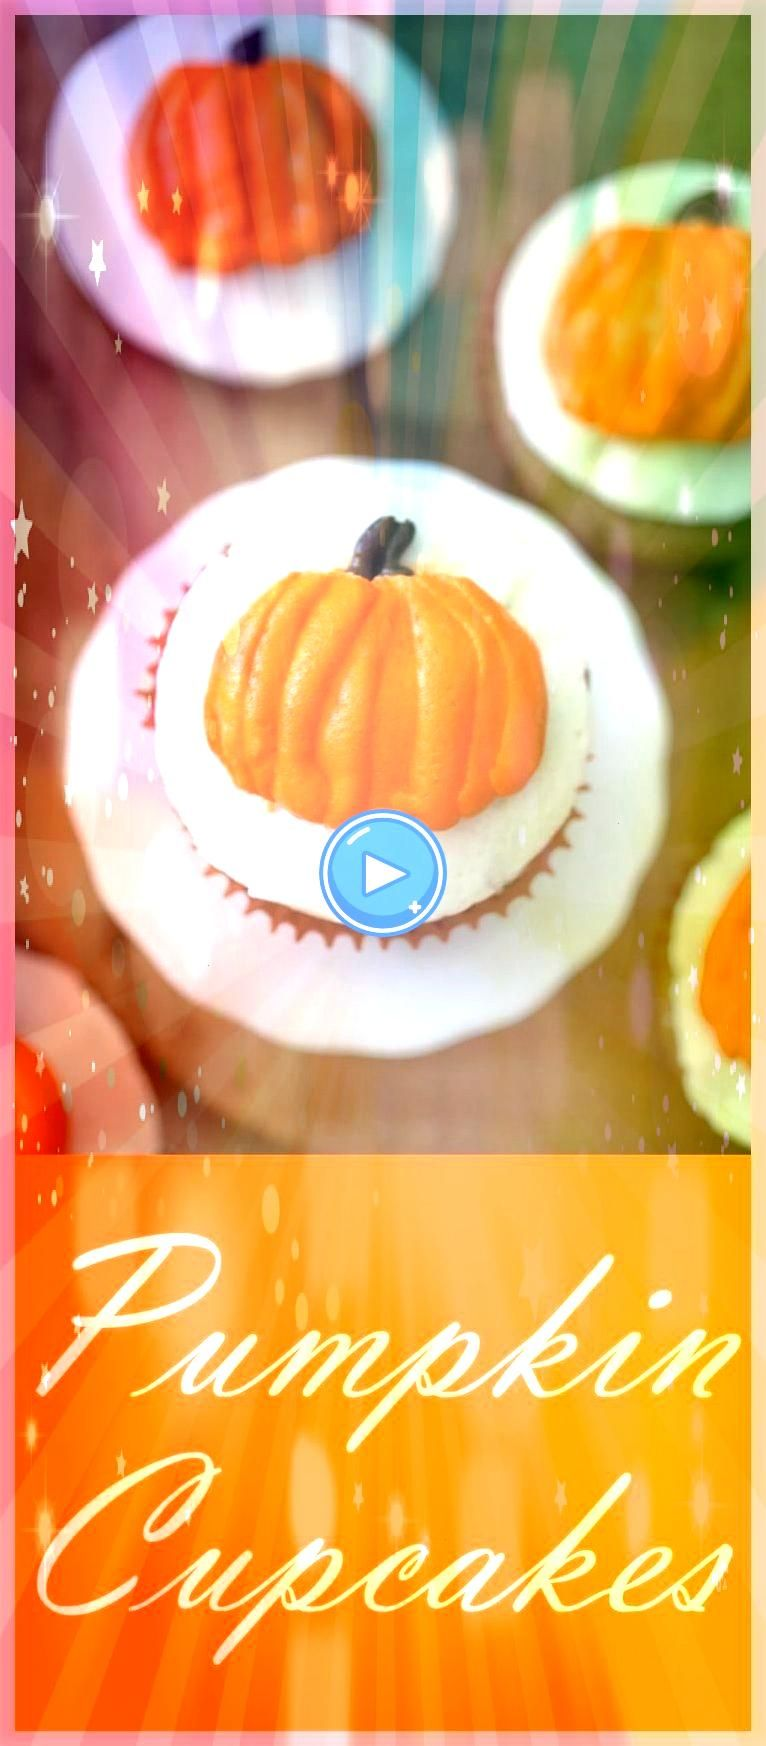 #pumpkinspicecupcakes #cupcakes #pumpkin #season #spice #these #the #and #arePumpkin Spice Cupcakes - The pumpkin season and these cupcakes are the ...,  Pumpkin Spice Cupcakes - The pumpkin season and these cupcakes are the ..., Pumpkin Spice Cupcakes - The pumpkin season and these cupcakes are the ...,  Pumpkin Spice Cupcakes - The pumpkin season and these cupcakes are the ...,   Clever way to cook pasta and wilt greens (and steam fish).  These moist, delicious, pillowy soft pumpkin cup... #pumpkinspicecupcakes